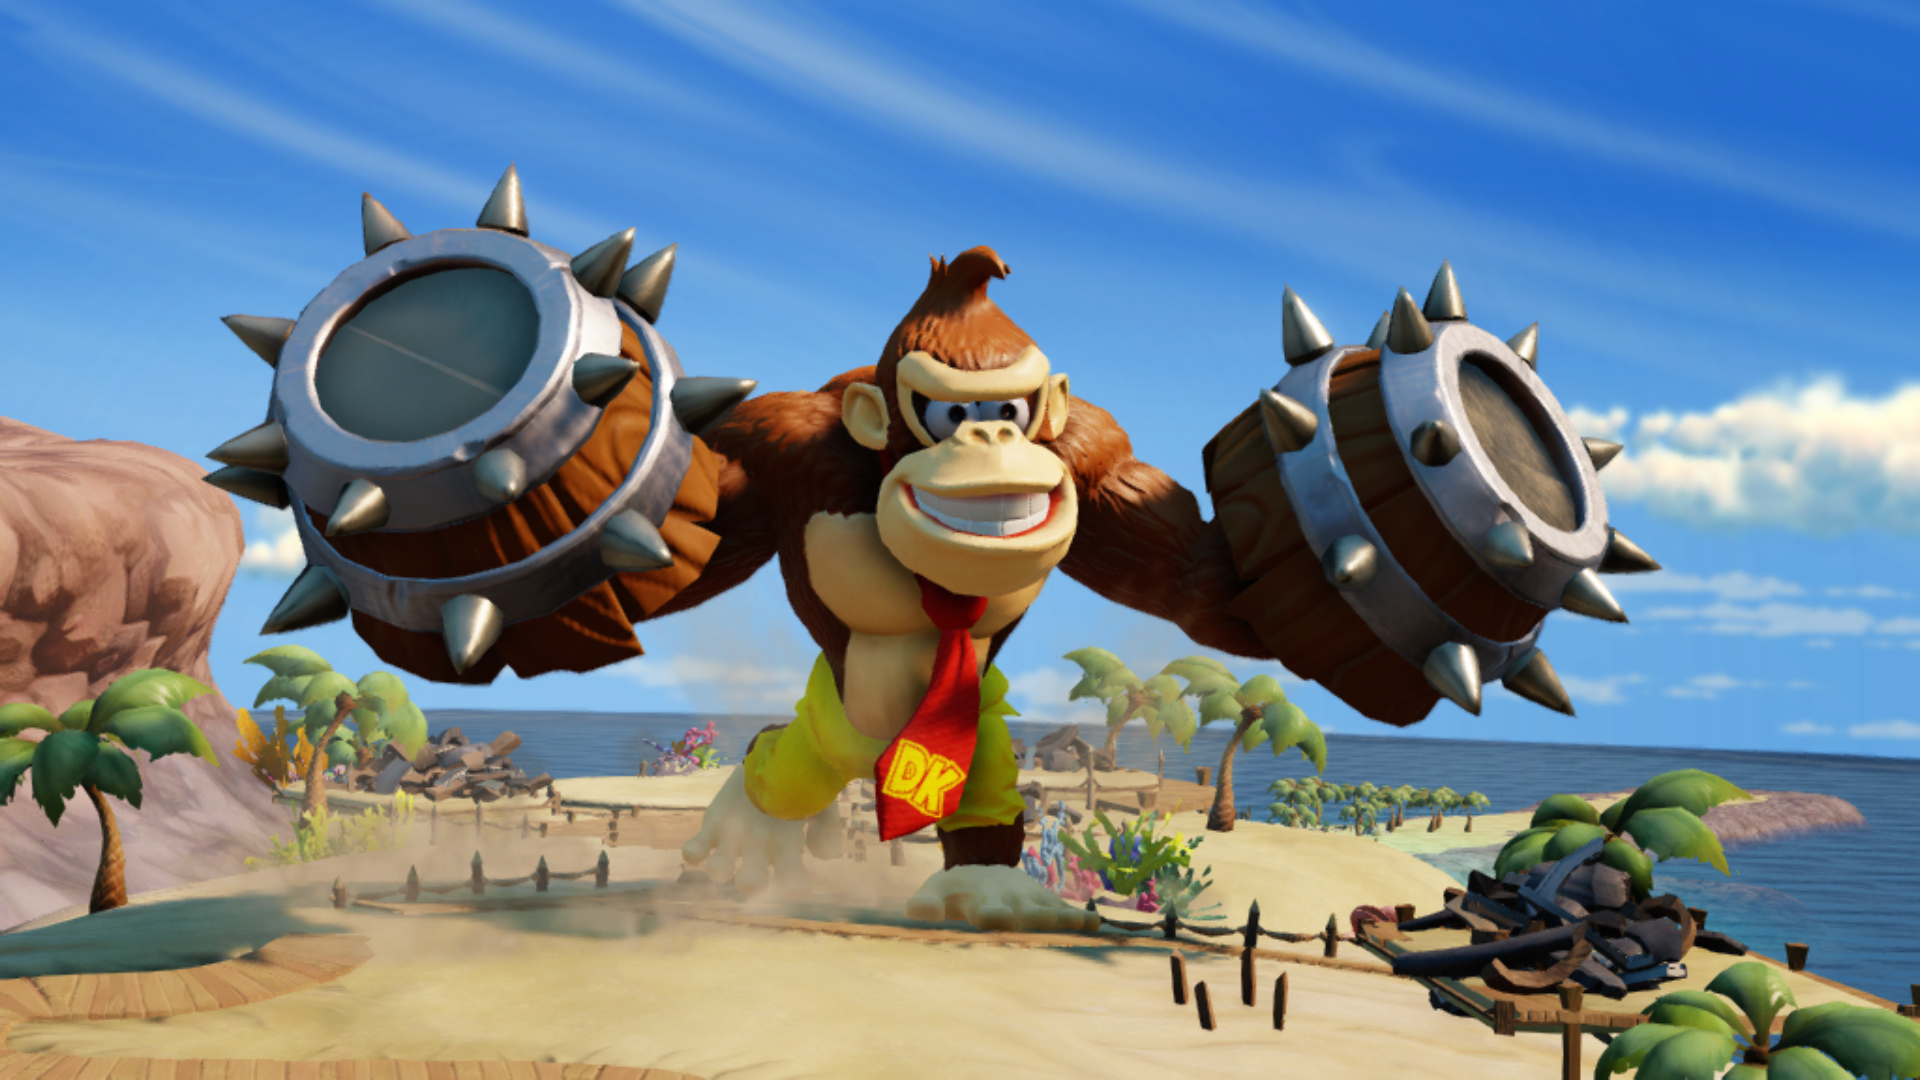 Maybe we could ask this Wii U exclusive Donkey Kong character to smash some of the bugs for us.